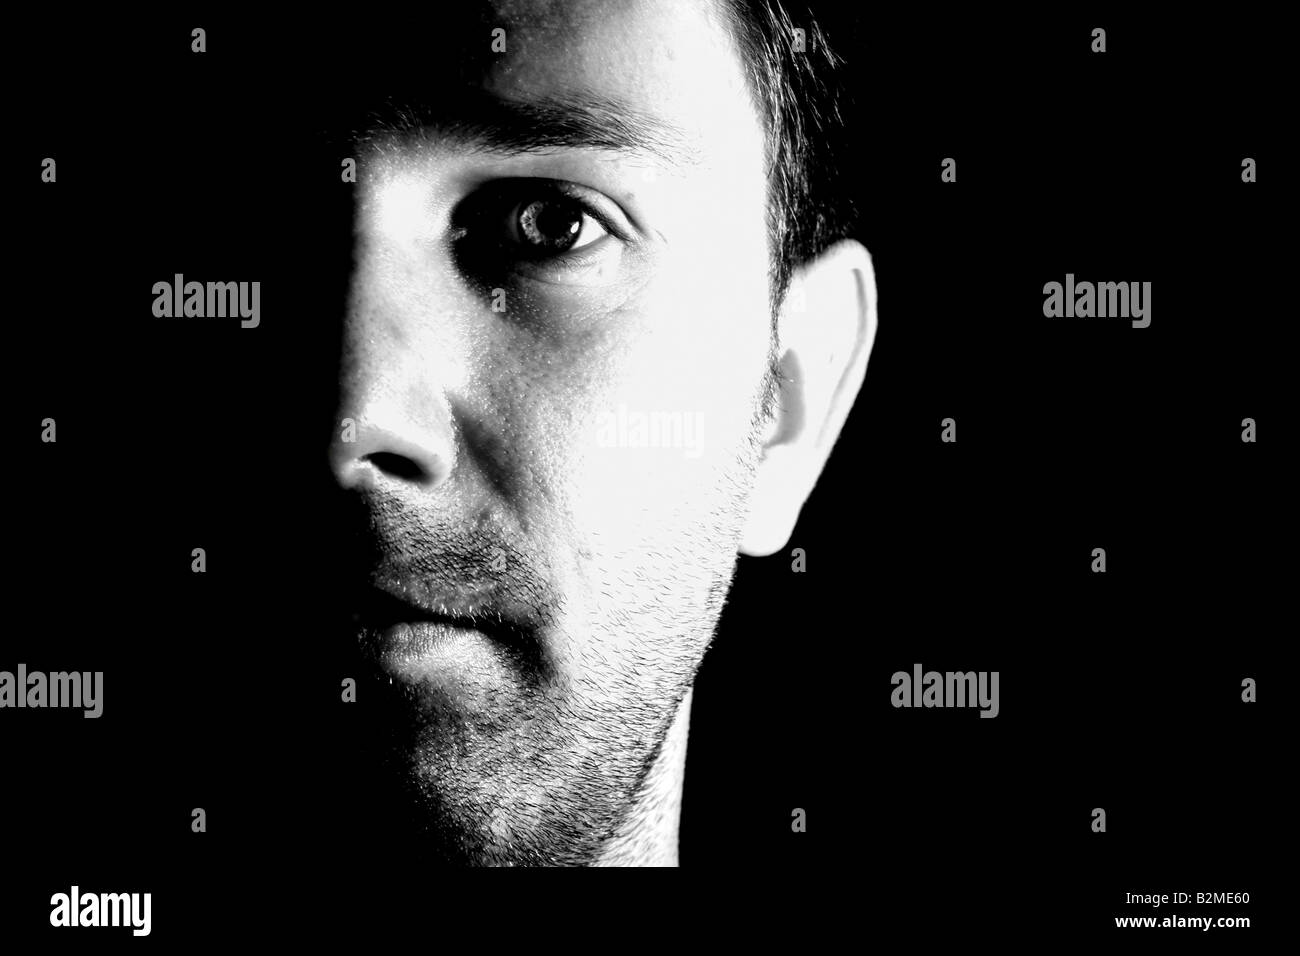 A stark black and white portrait of a caucasian man's face, half in shadow - Stock Image